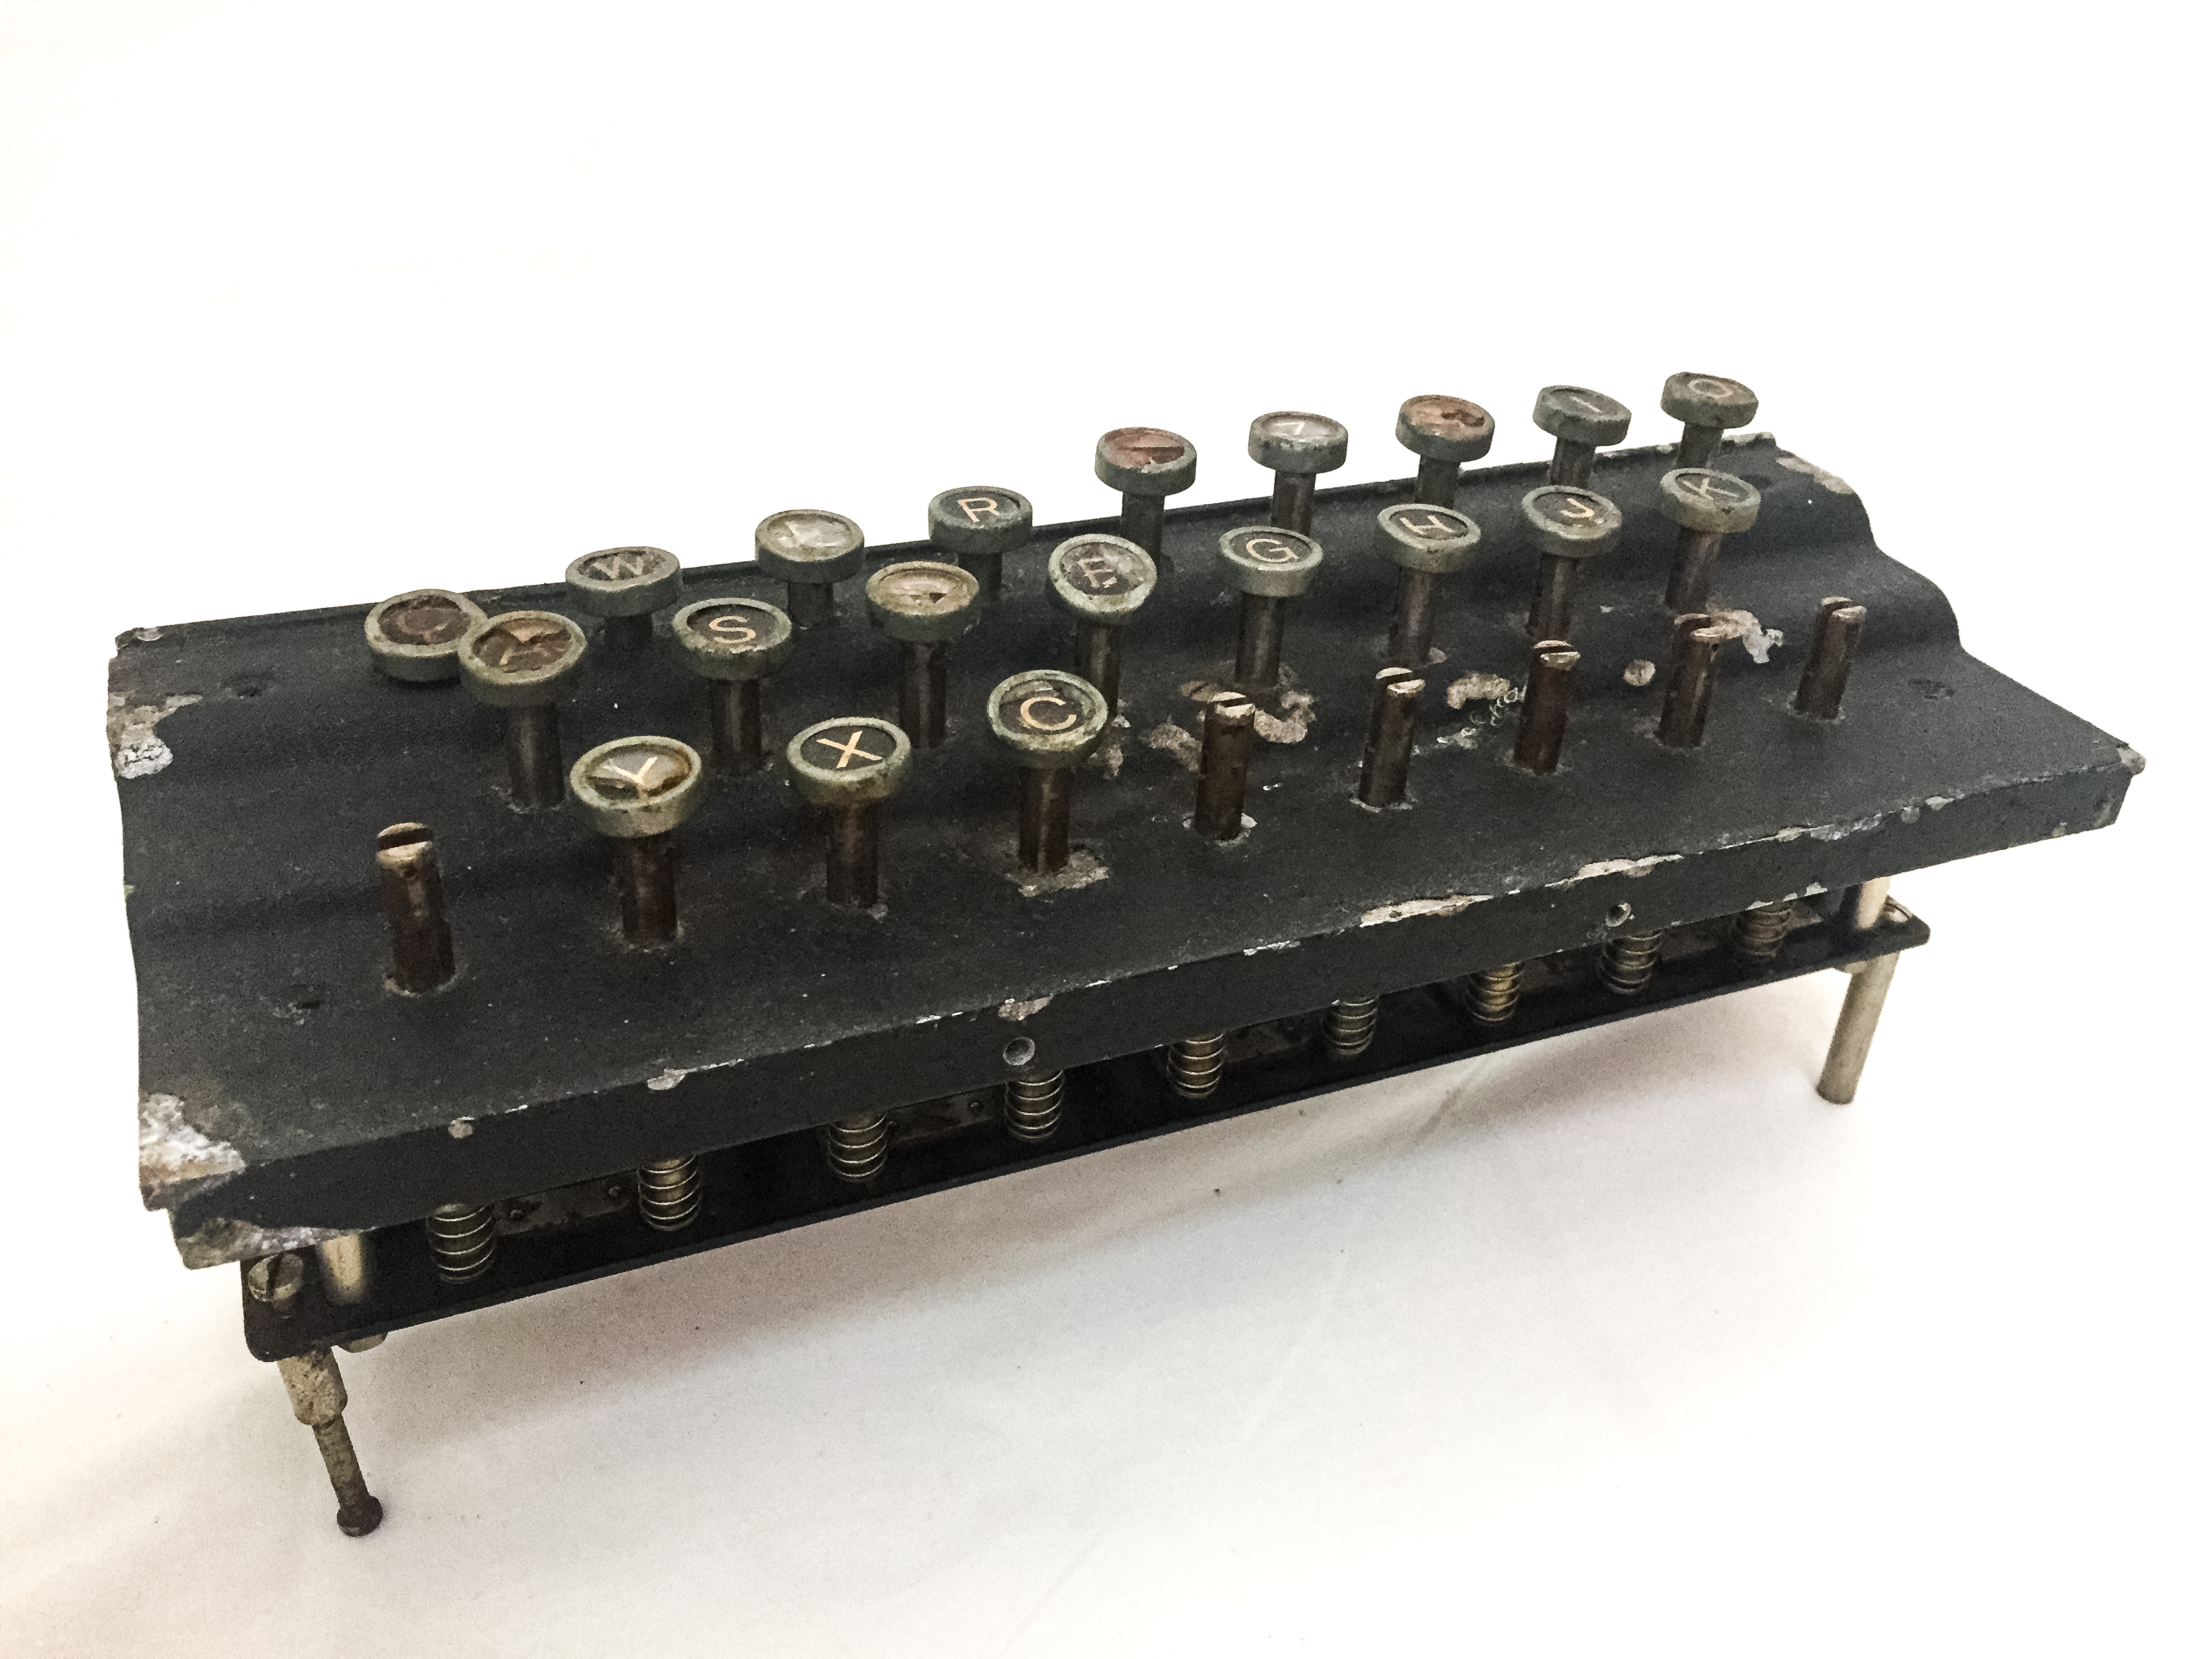 Keyboard from an Enigma machine.